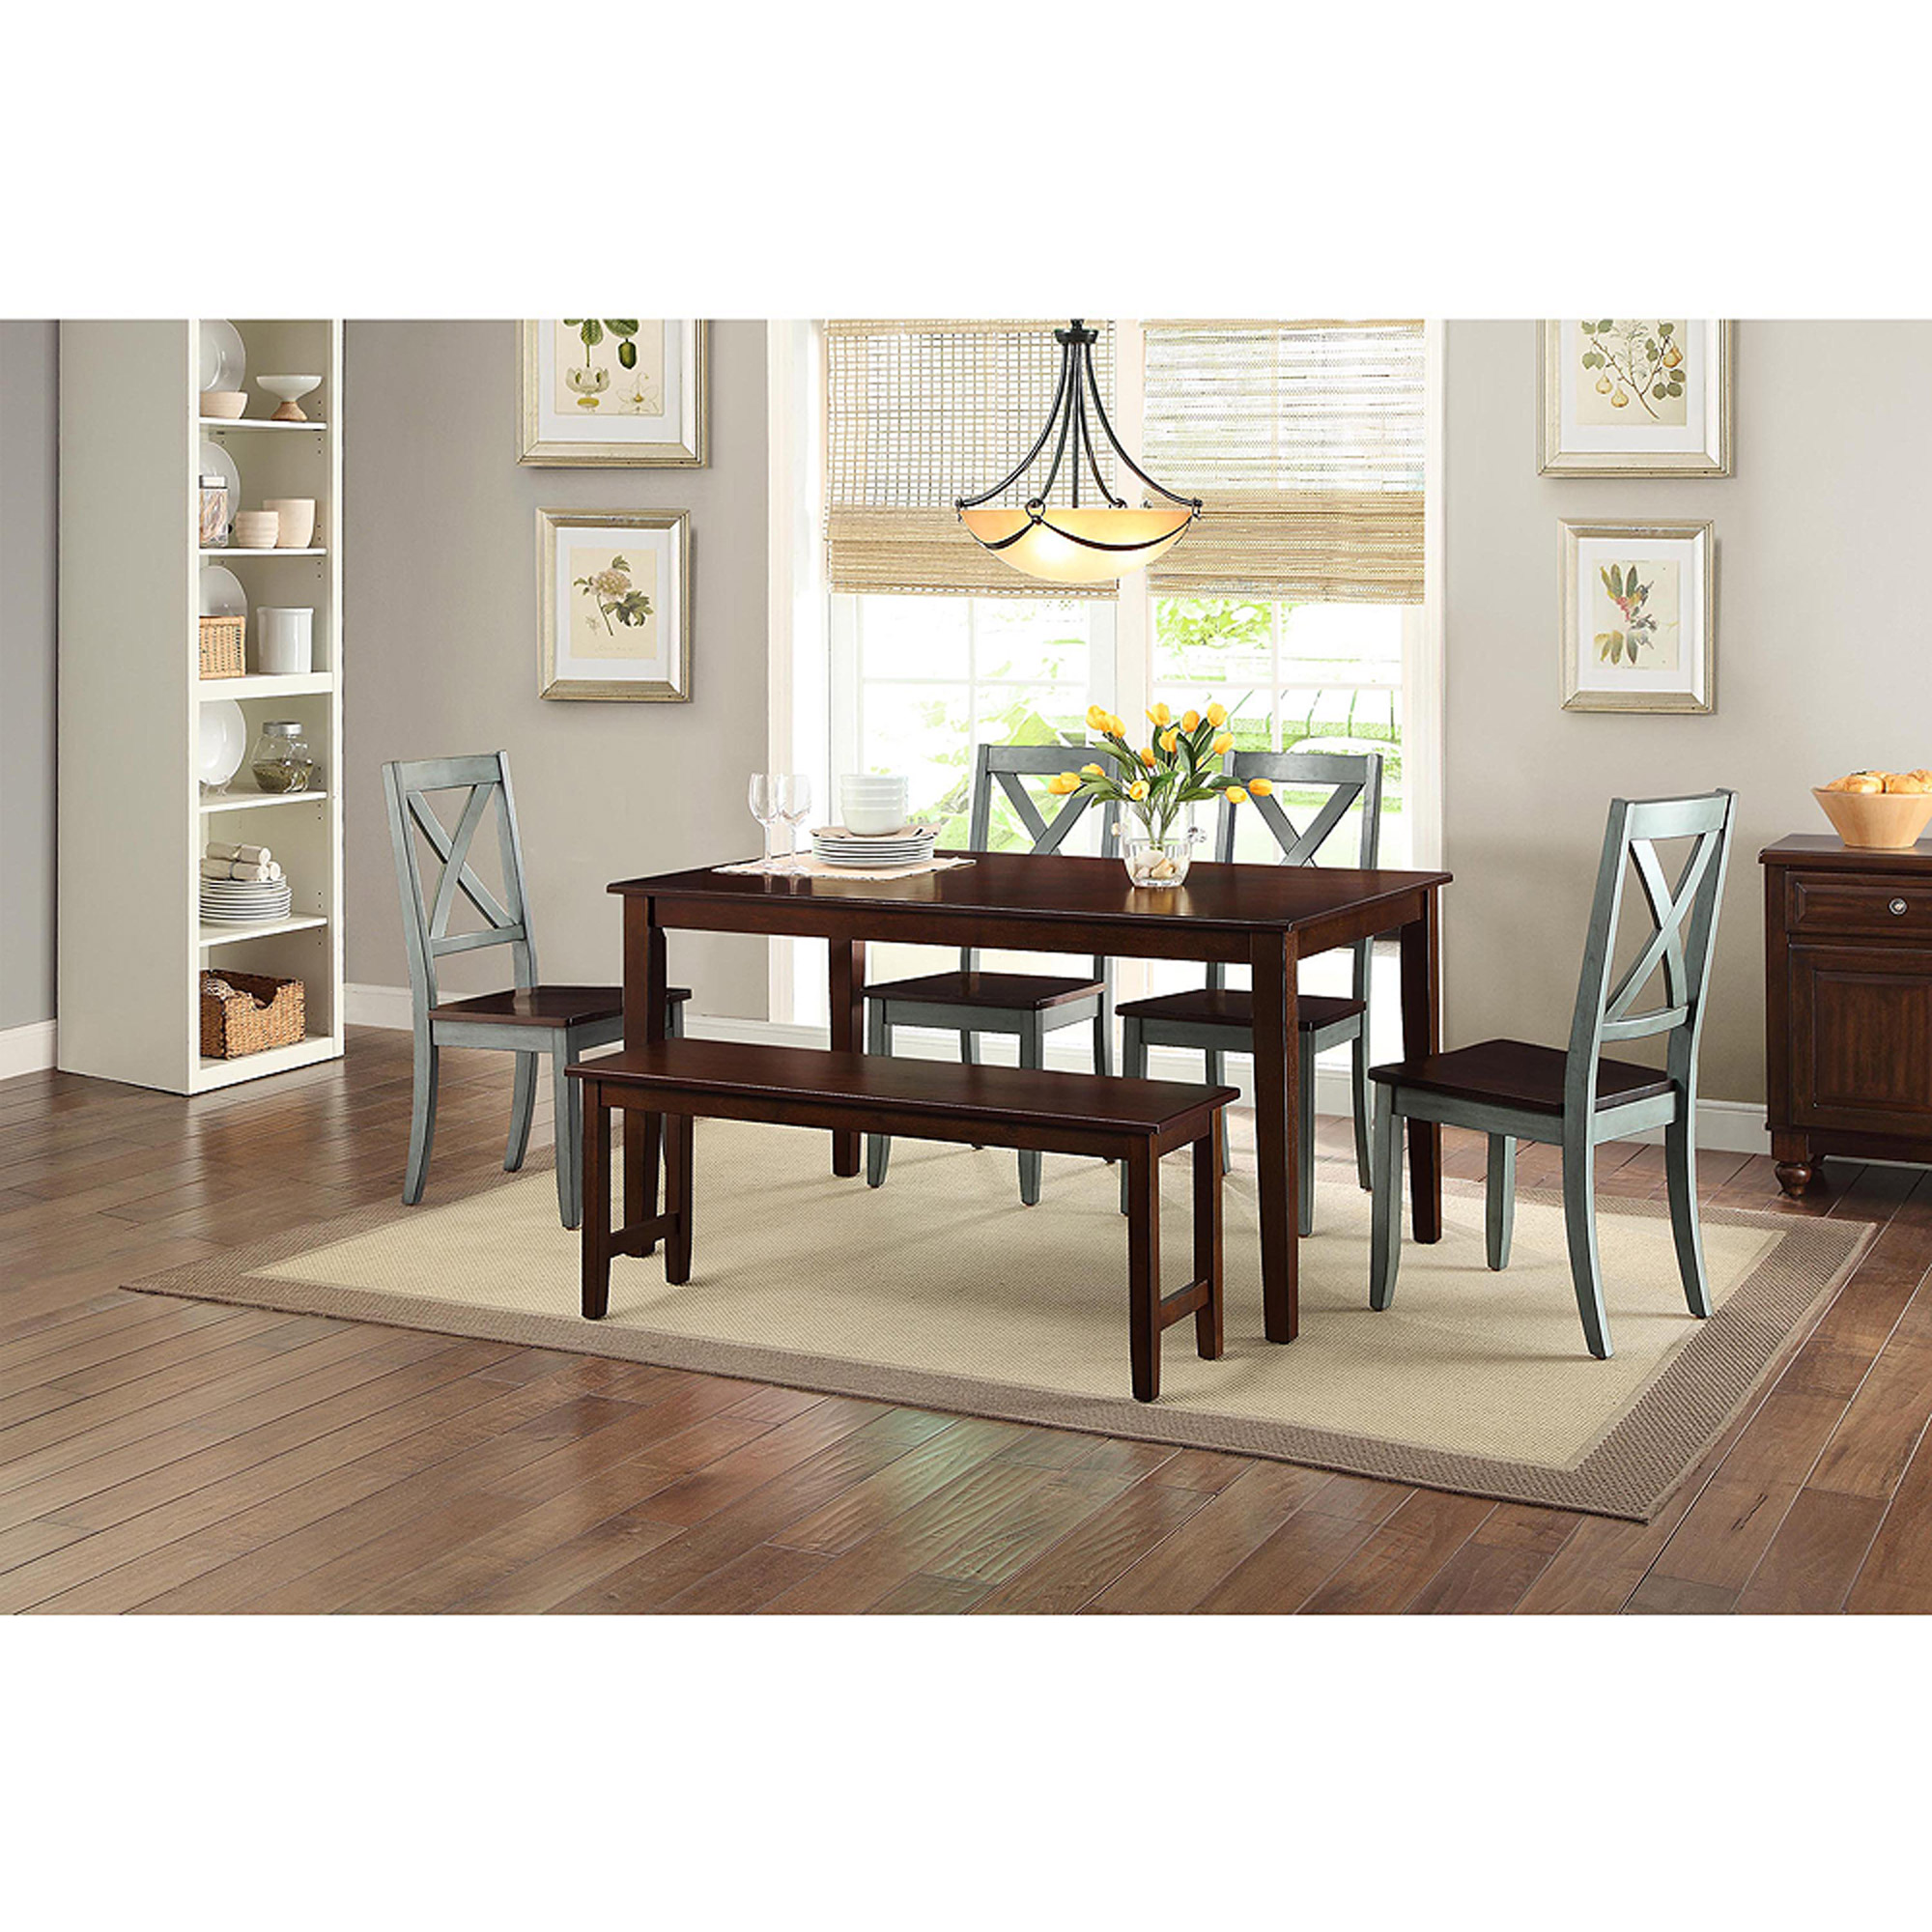 Awesome Better Homes And Gardens Bankston Mocha 6 Piece Dining Set With 4 Maddox  Blue Chairs And Dining Bench   Walmart.com